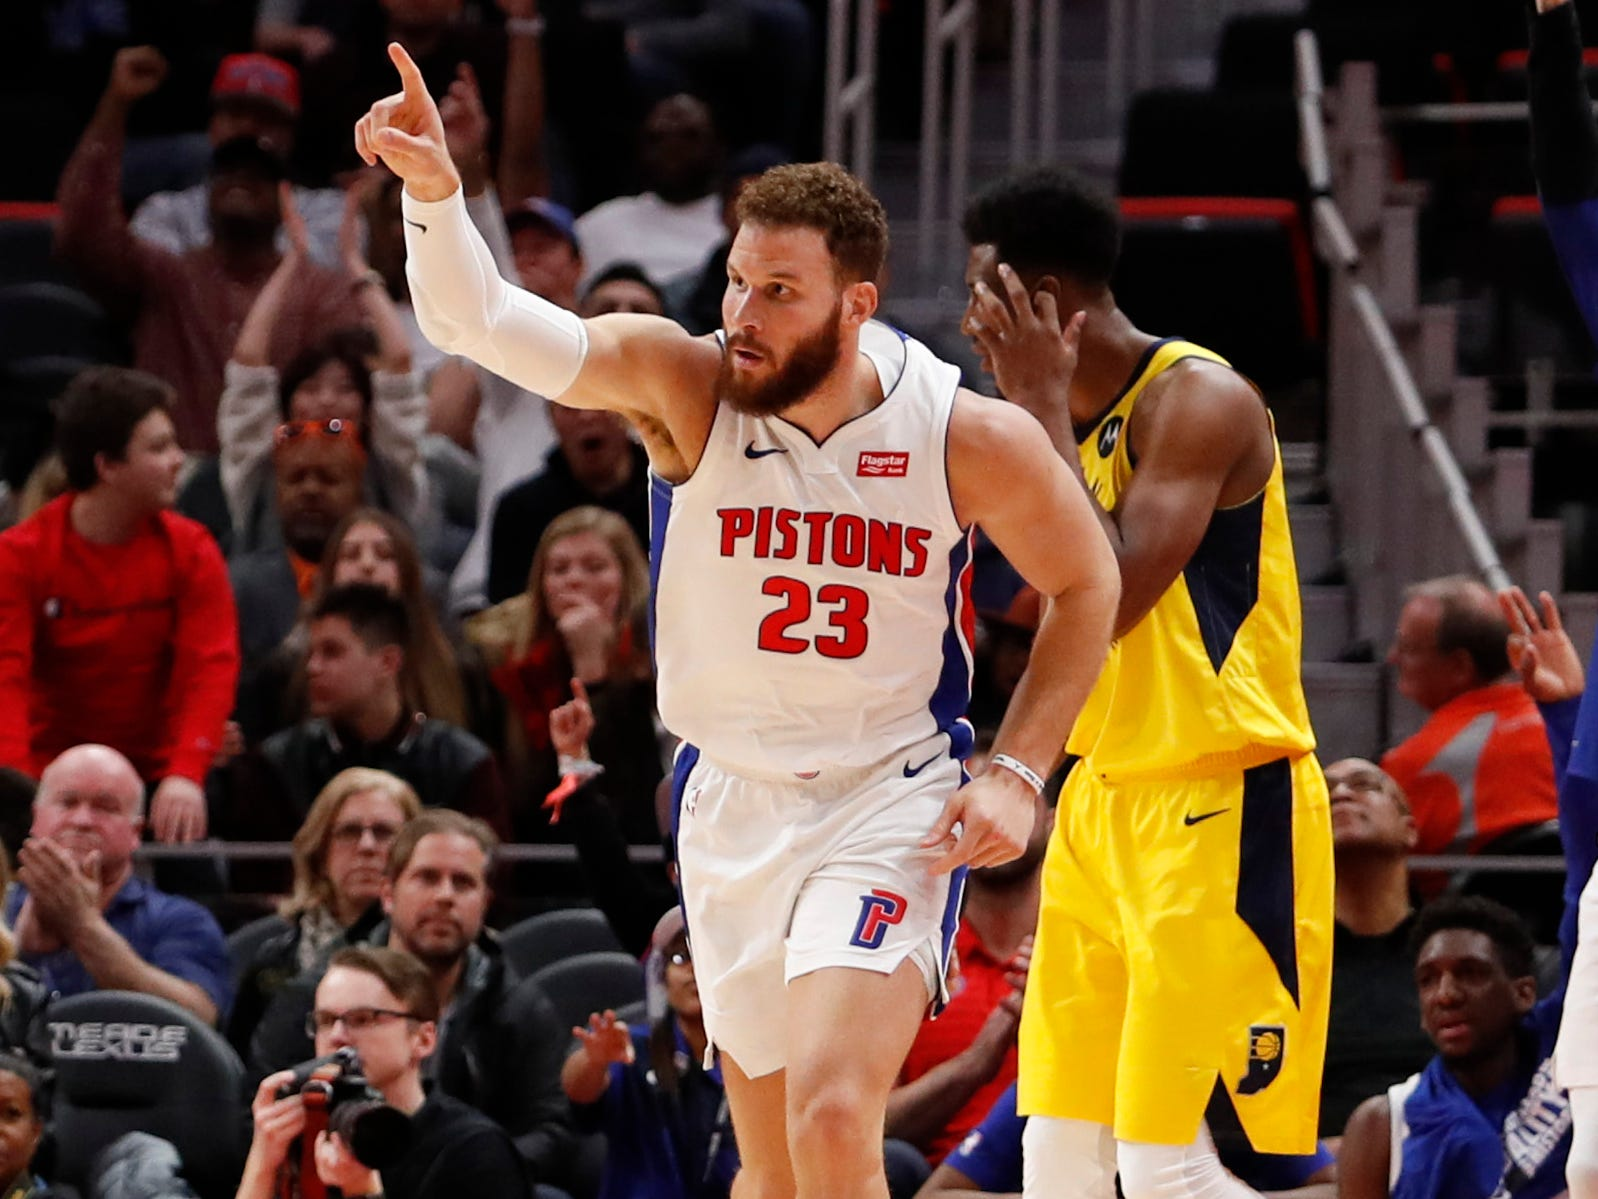 86. Blake Griffin, Pistons (Feb. 25): 20 points, 10 rebounds, 10 assists in 113-109 win over Pacers (second of season).